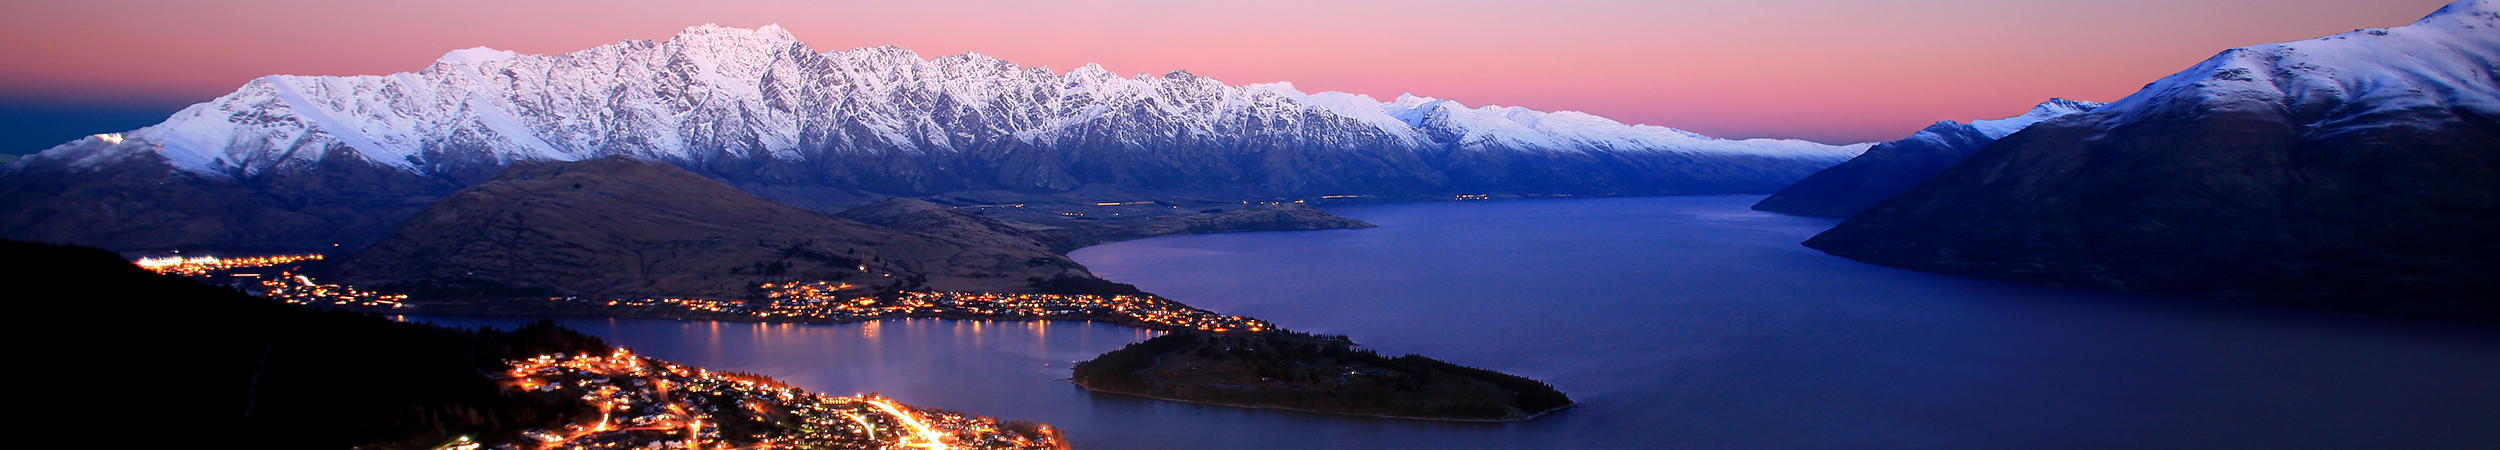 Queenstown-03-twilight